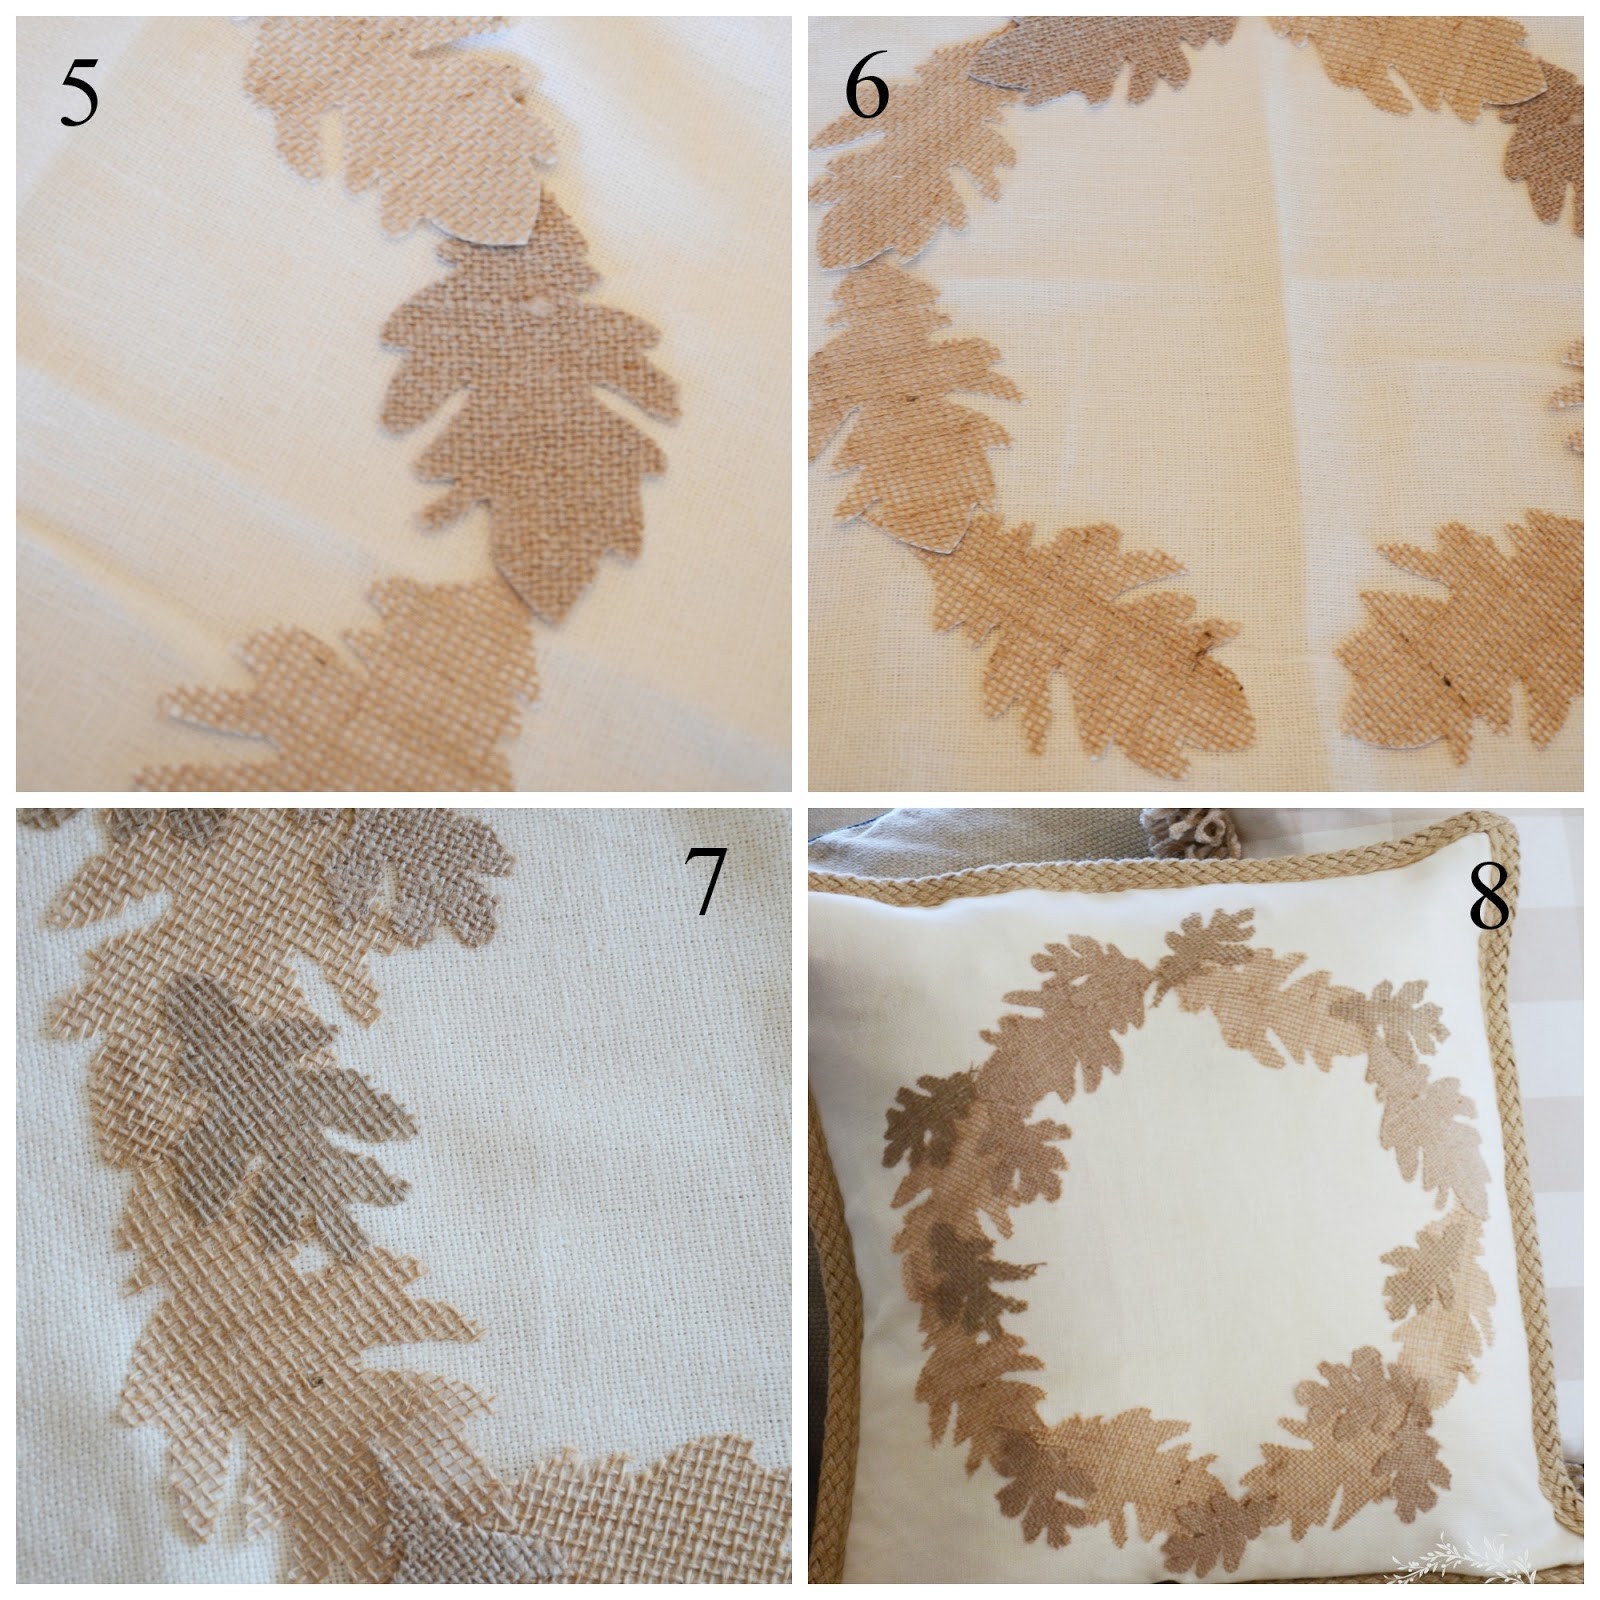 Arrange the big leaves on the pillow cover in a wreath